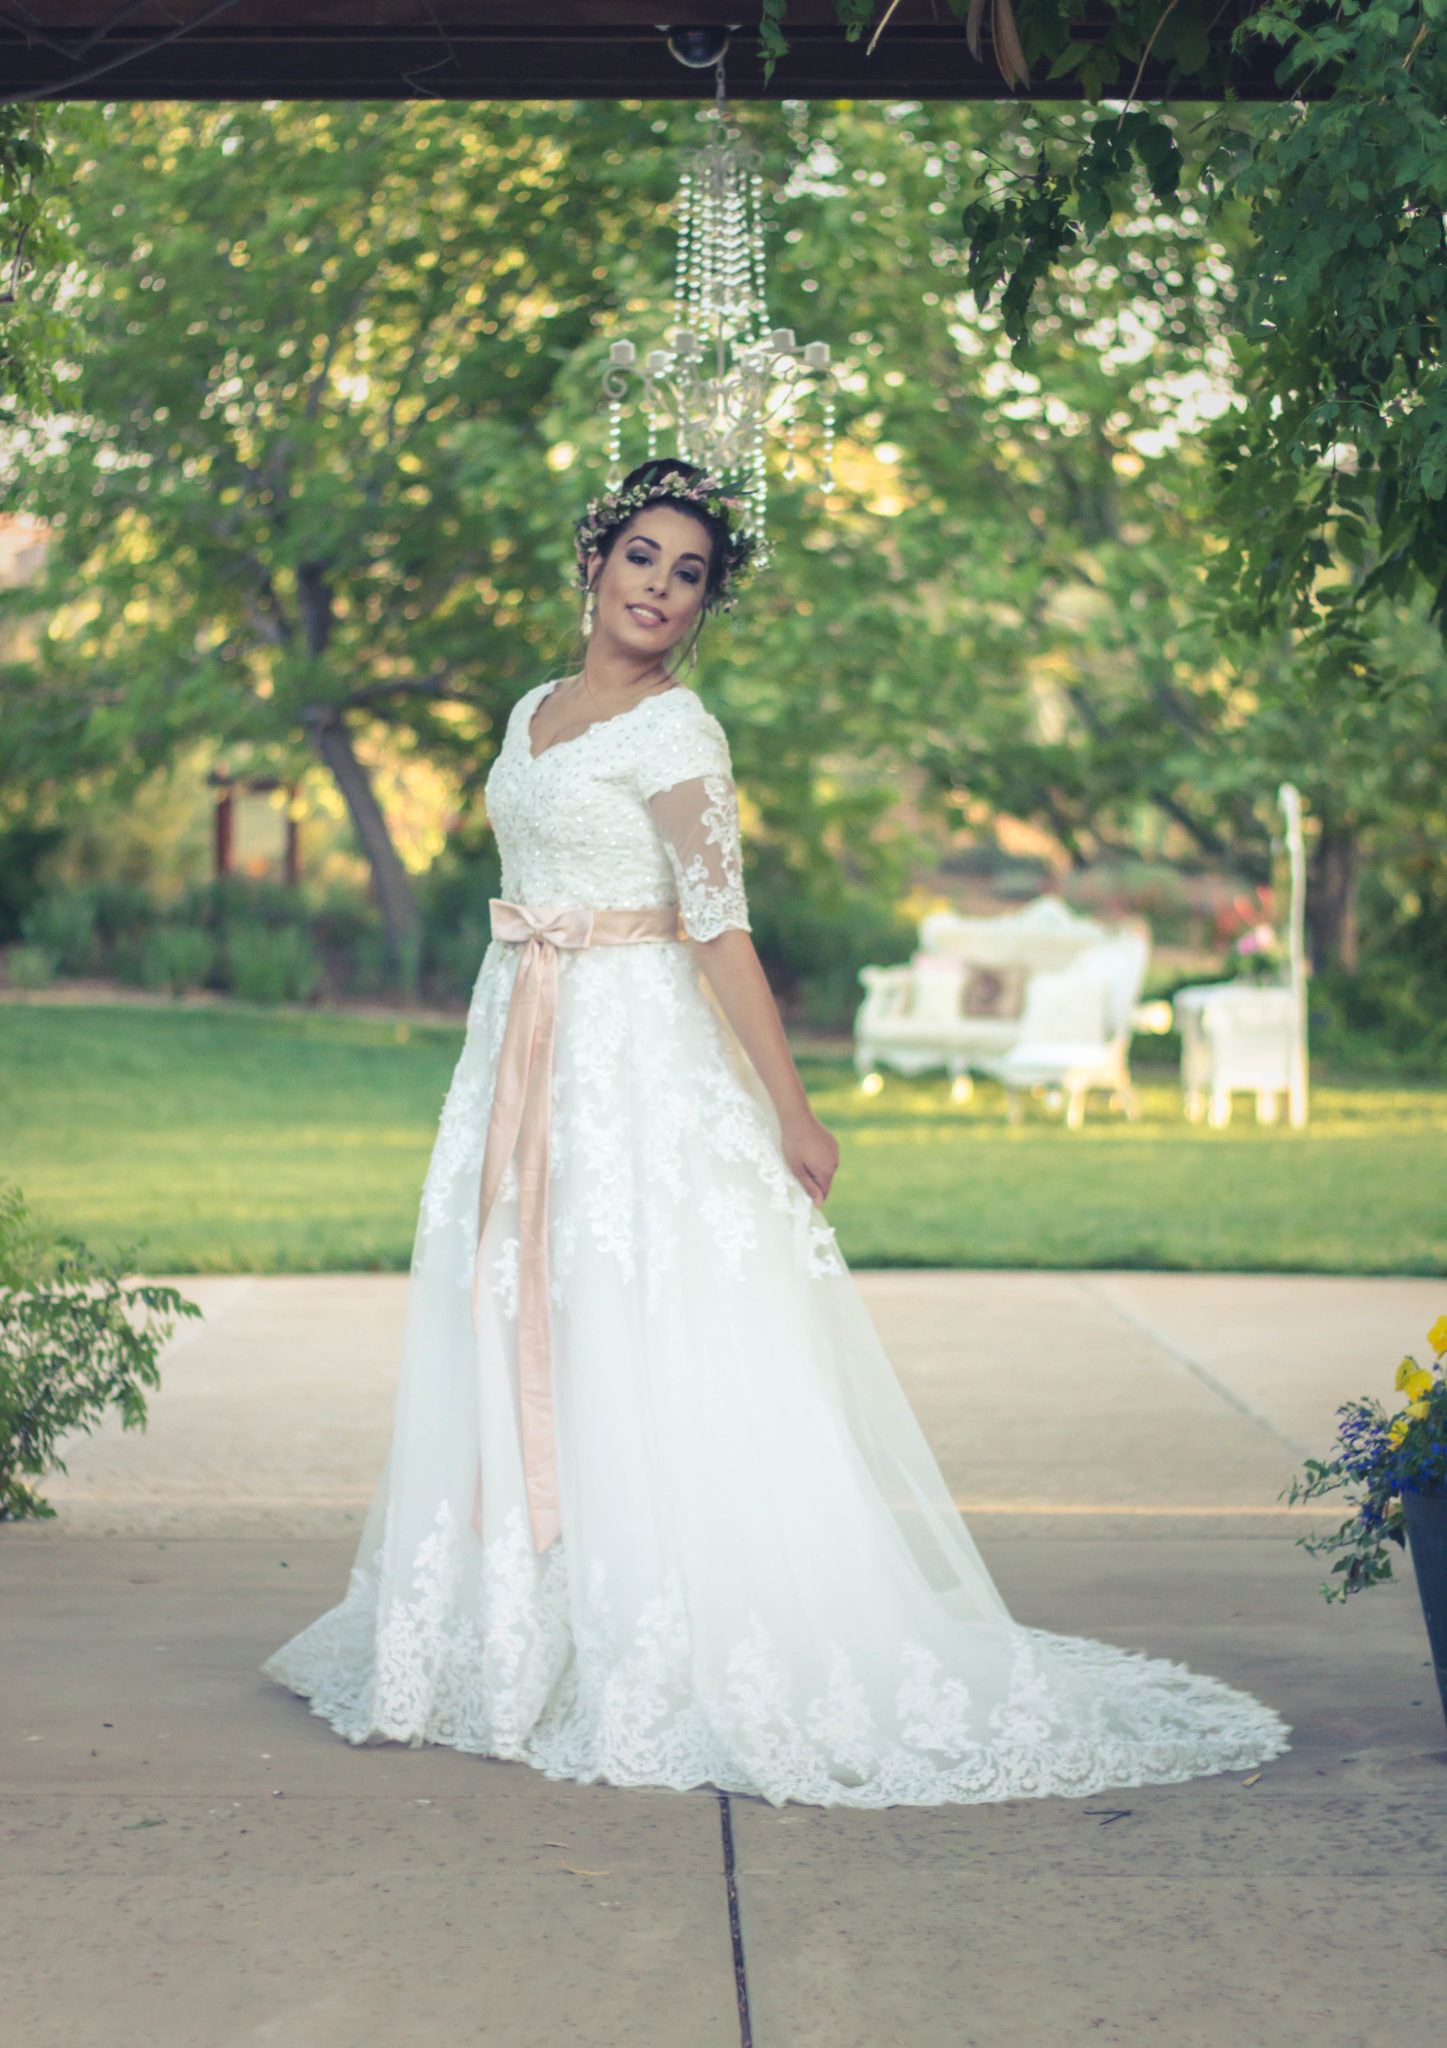 Bride Brittney Ann in custom-made wedding Dress